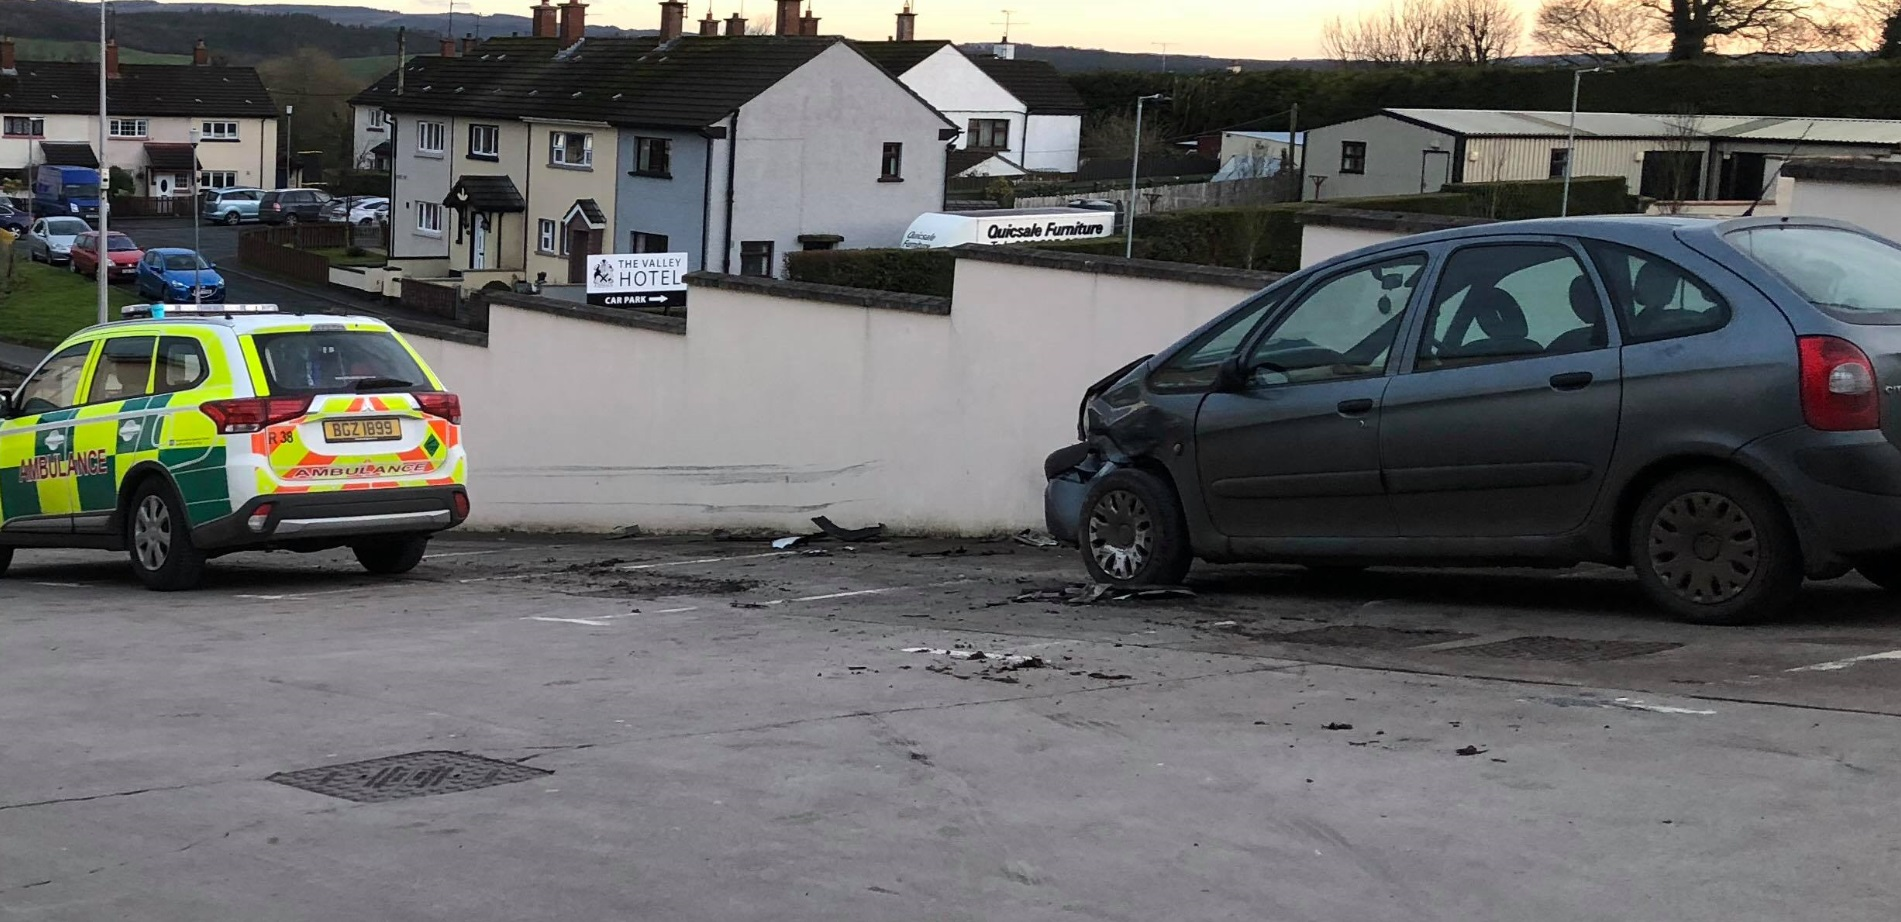 Runaway jeep and trailer 'nearly killed' DUP councillor